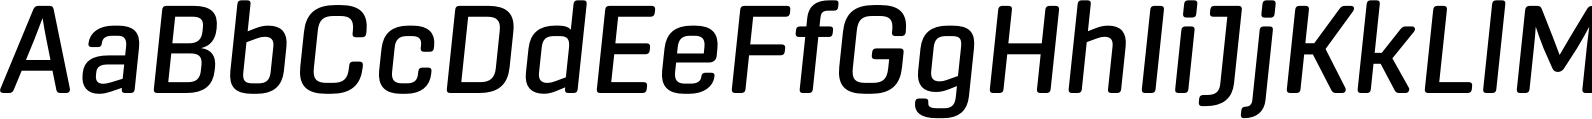 Center Medium Italic Font